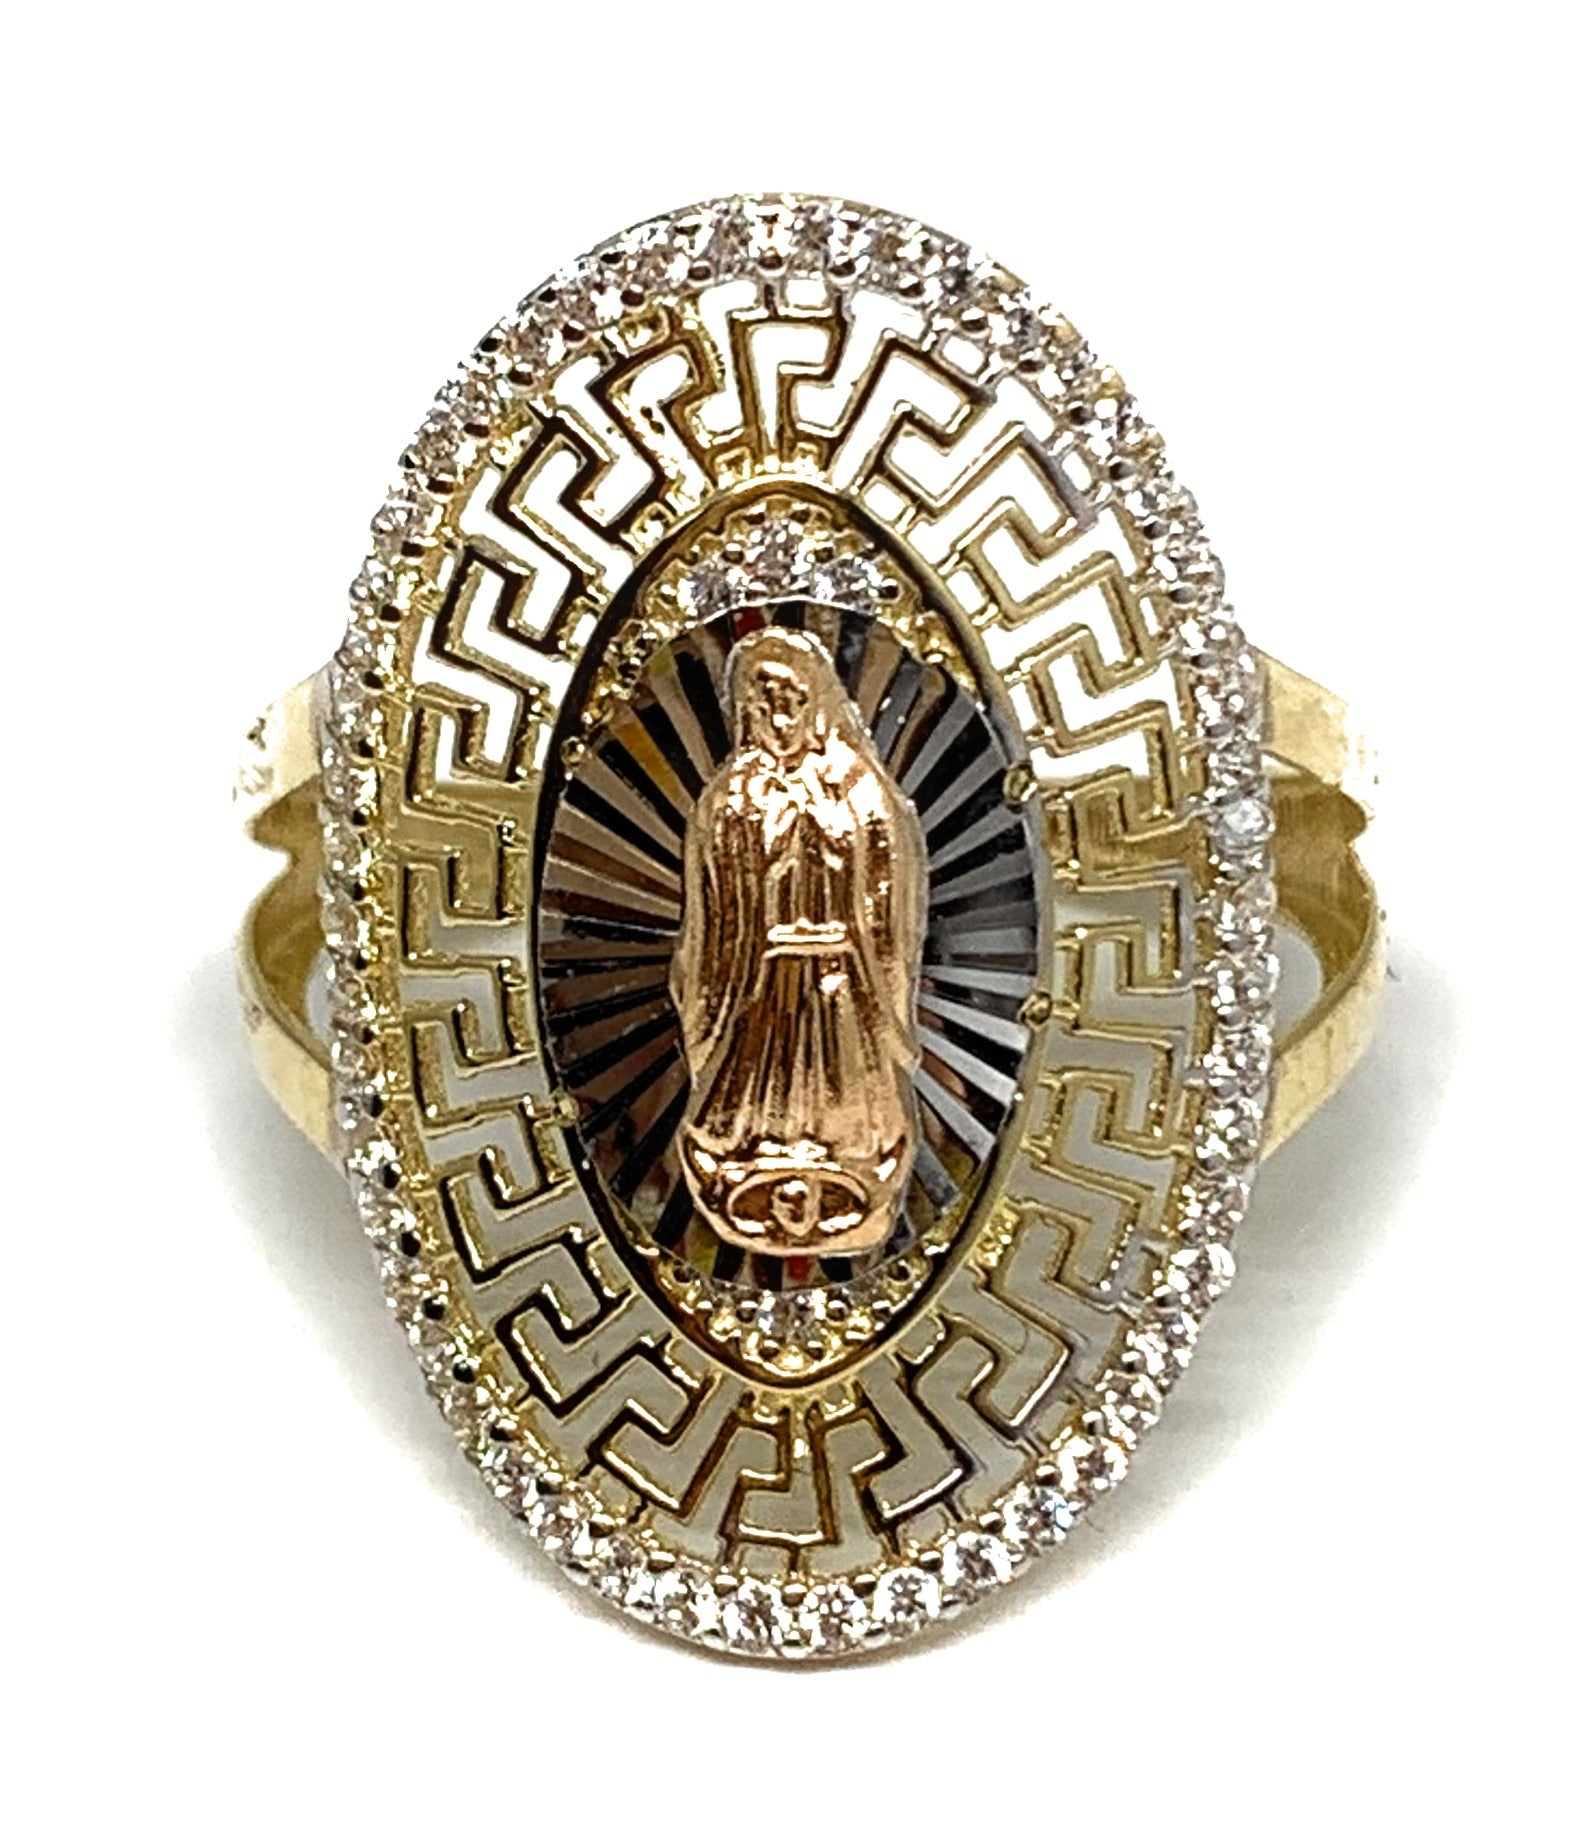 14k Solid Gold Tri-Color Virrgin Mary CZ Fancy Elegant Versace Ring